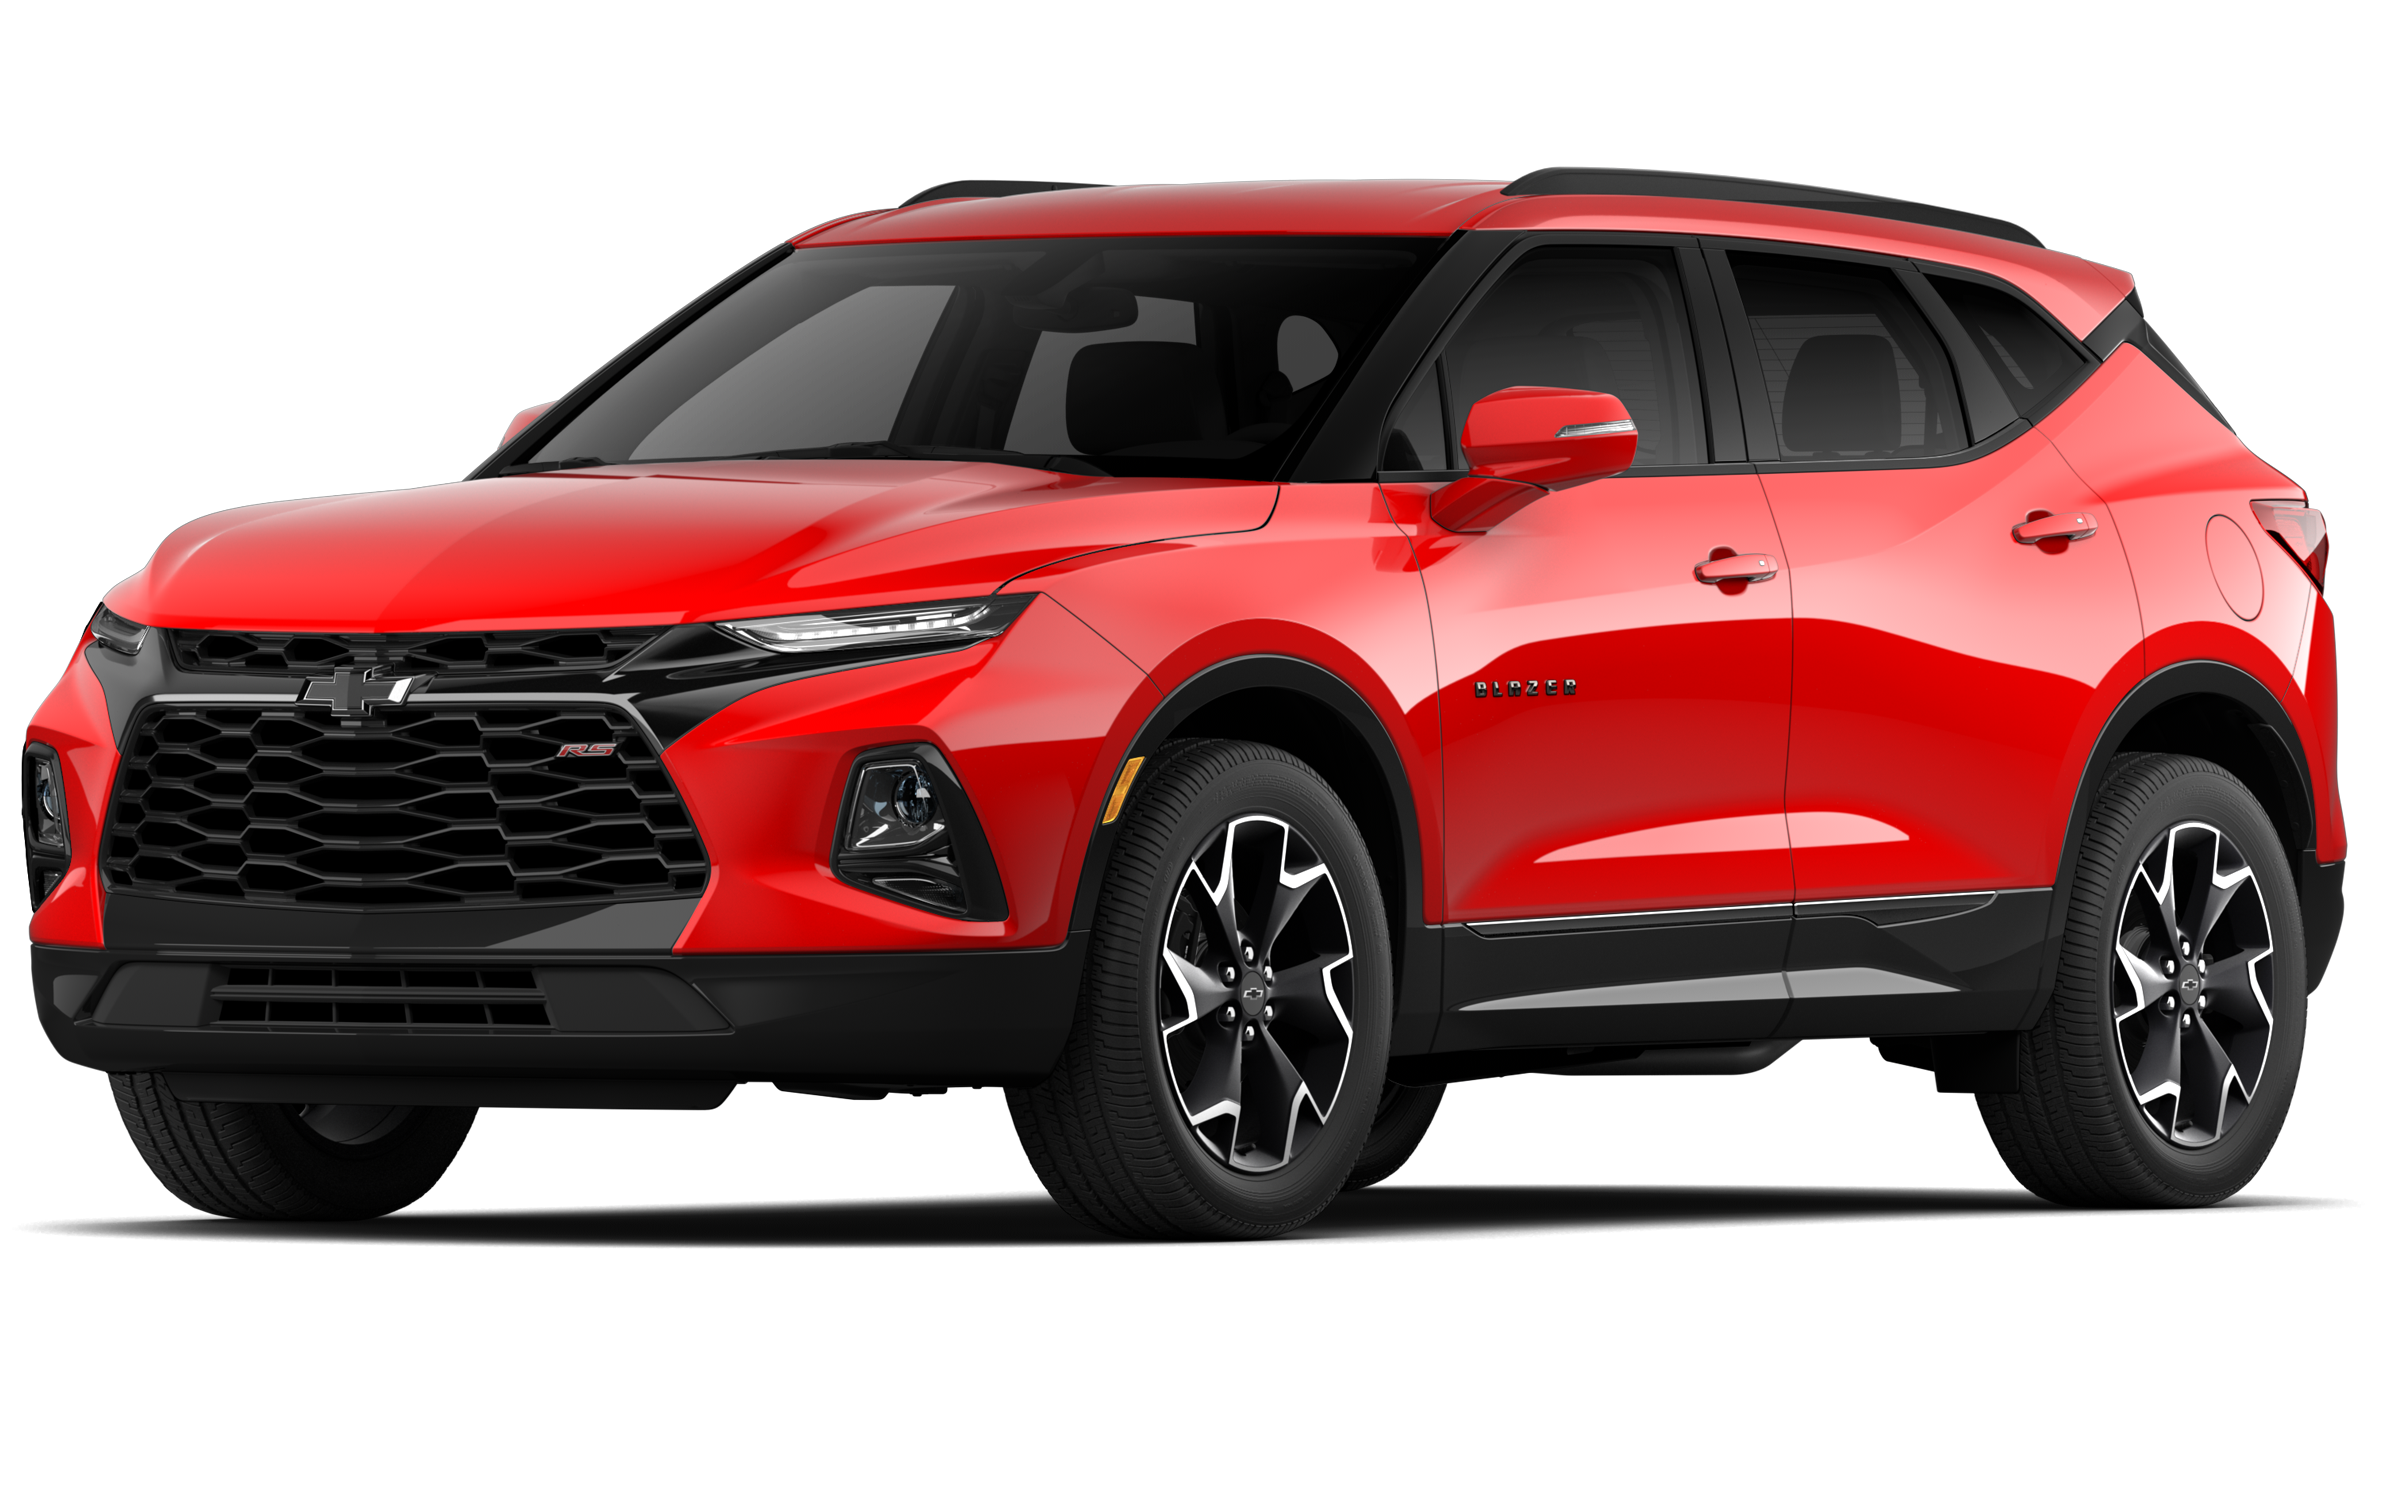 2020 Chevrolet Blazer Prices, Reviews, and Pictures | Edmunds